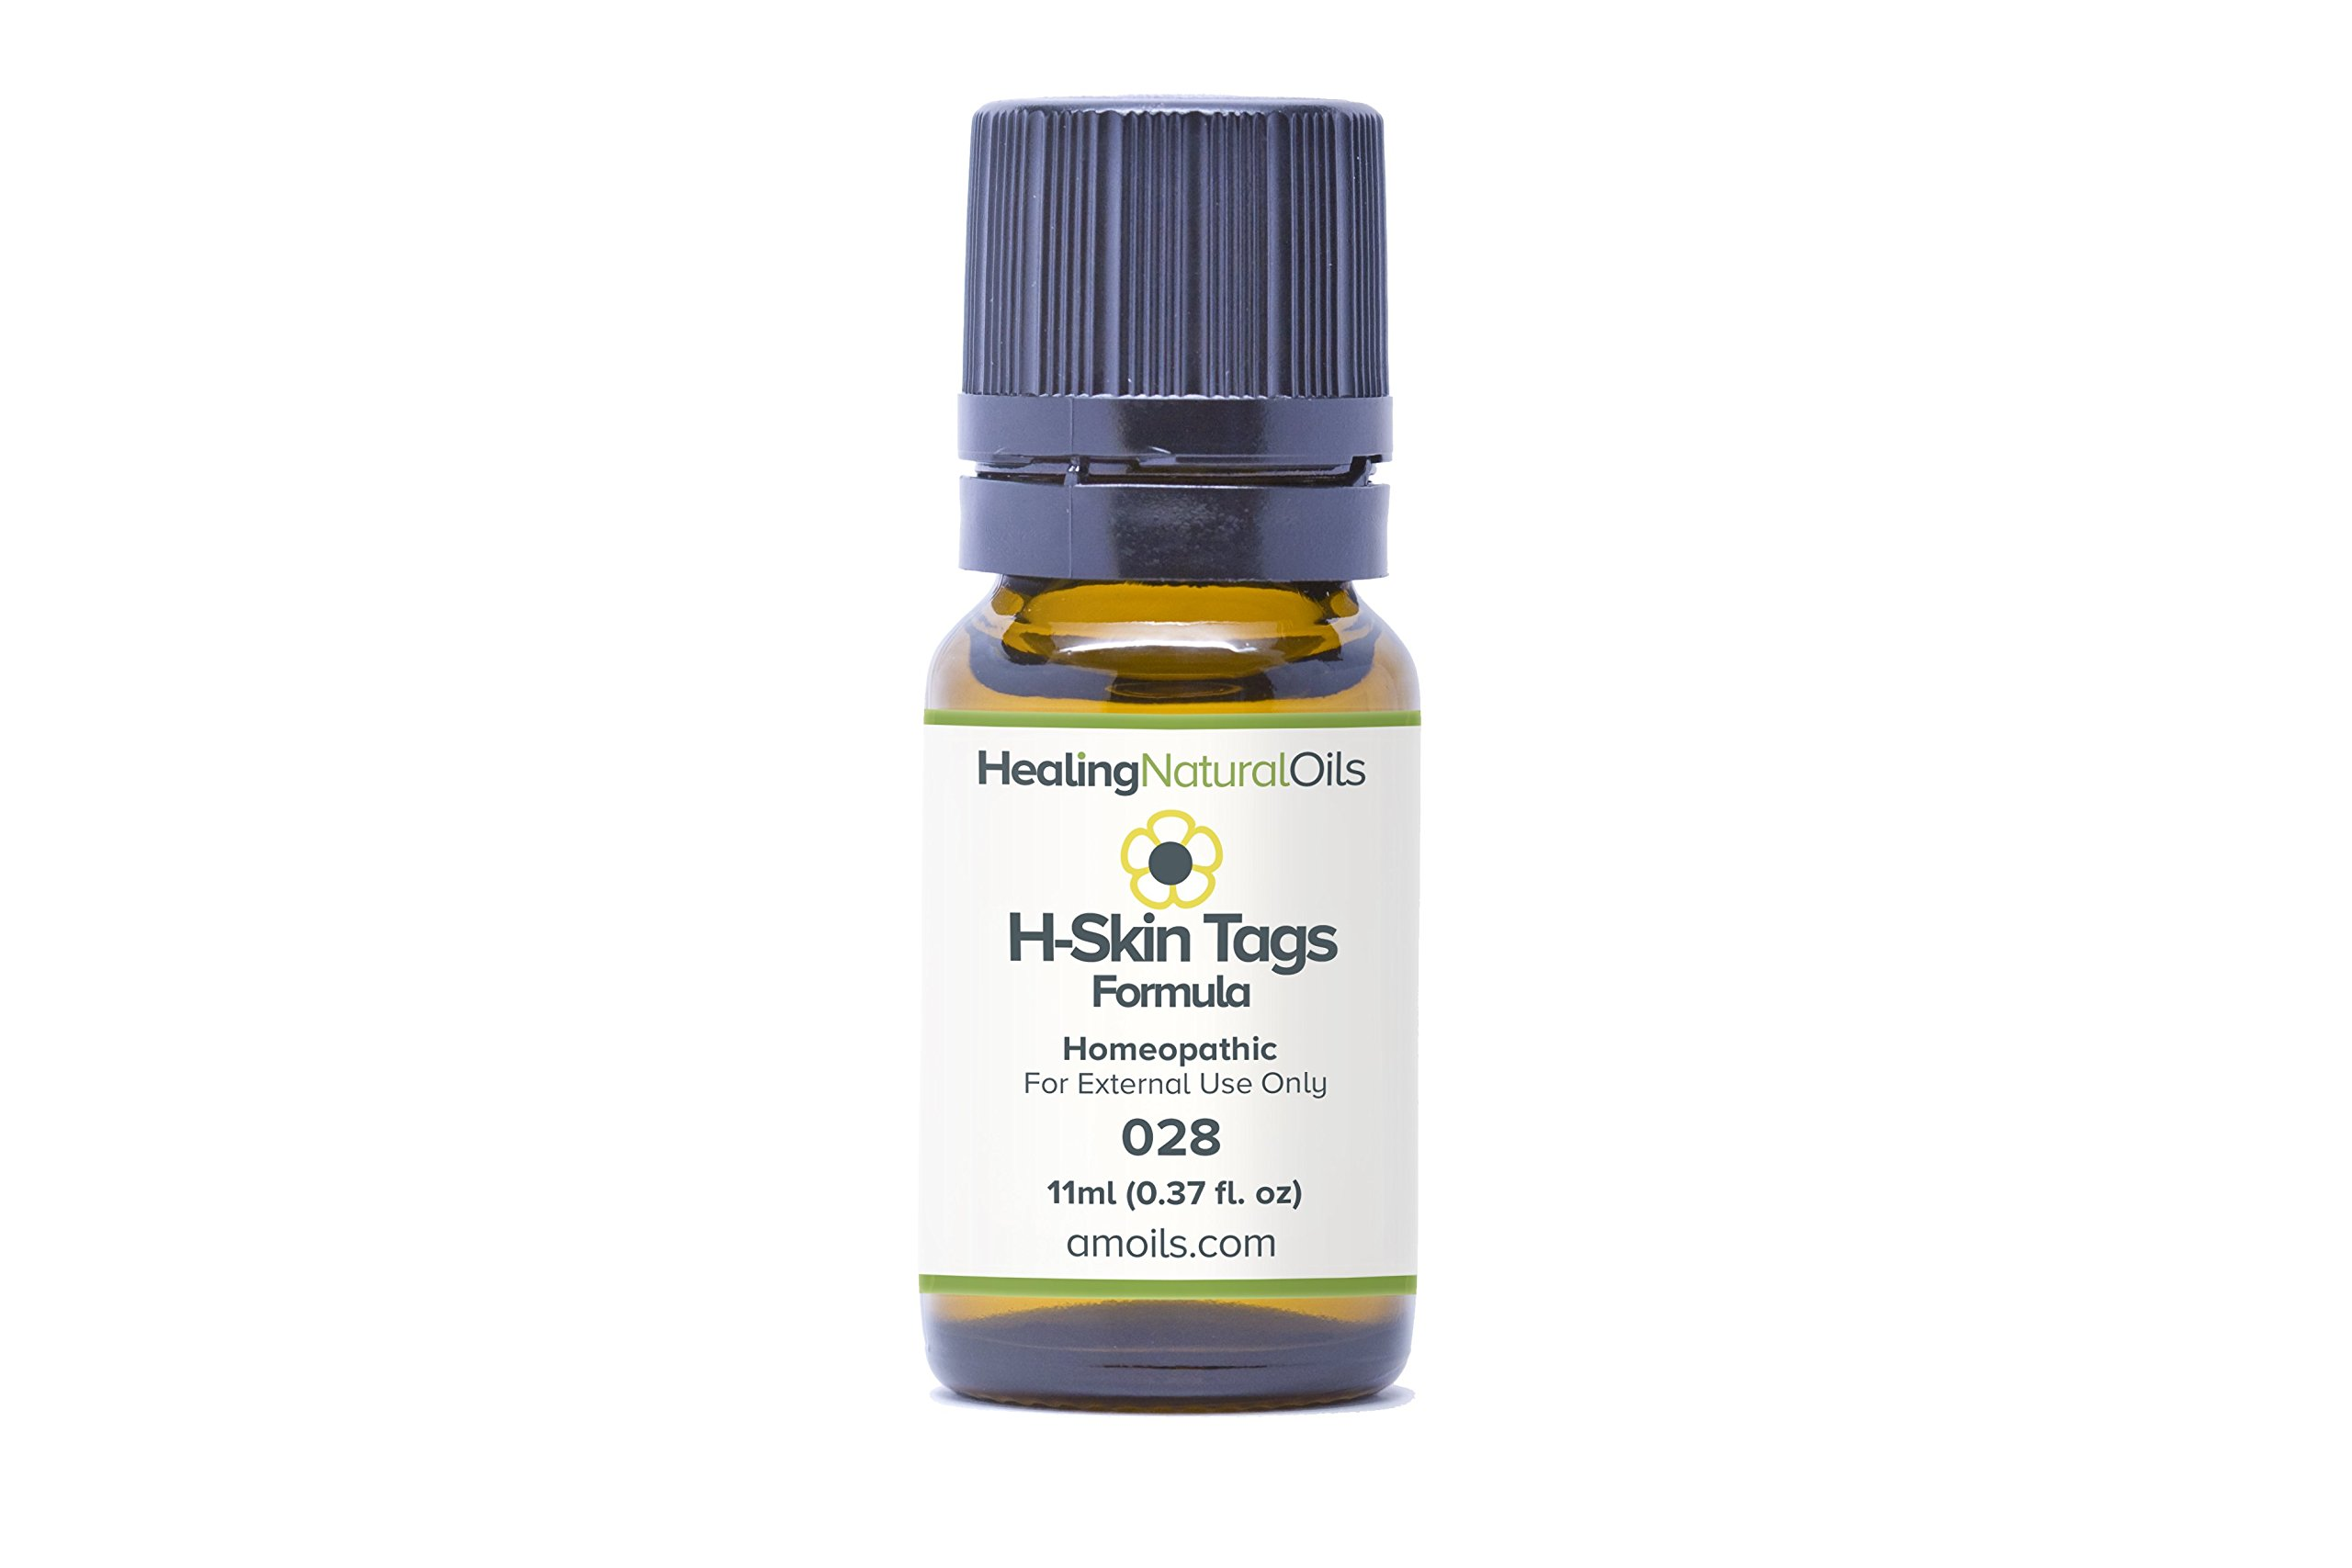 Skin Tag Removal Alternative 11ml size. A Powerful Blend of Safe, Gentle Natural Ingredients for Effective Skin Tag Treatment. No Cream, Tape or Remover Kits. Designed to Remove Skin Tags At Home by Healing Natural Oils